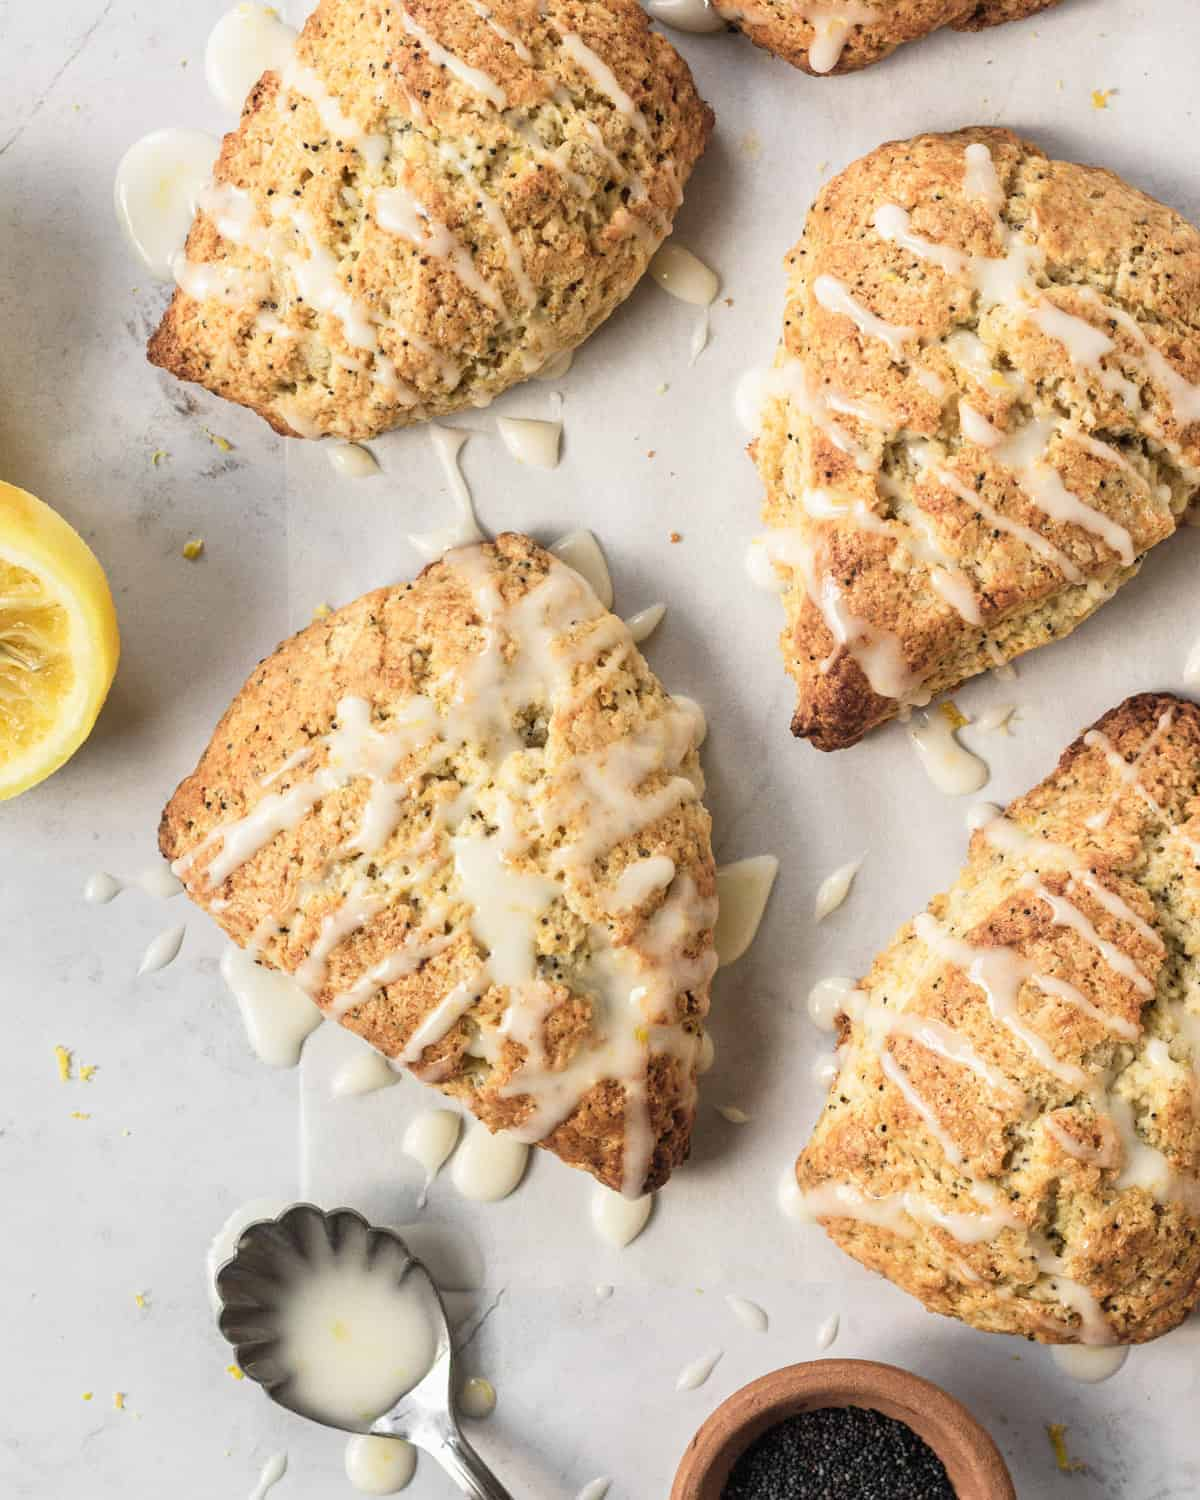 overhead view of lemon scones with glazed drizzled over top sitting on parchment paper with a lemon next to it.